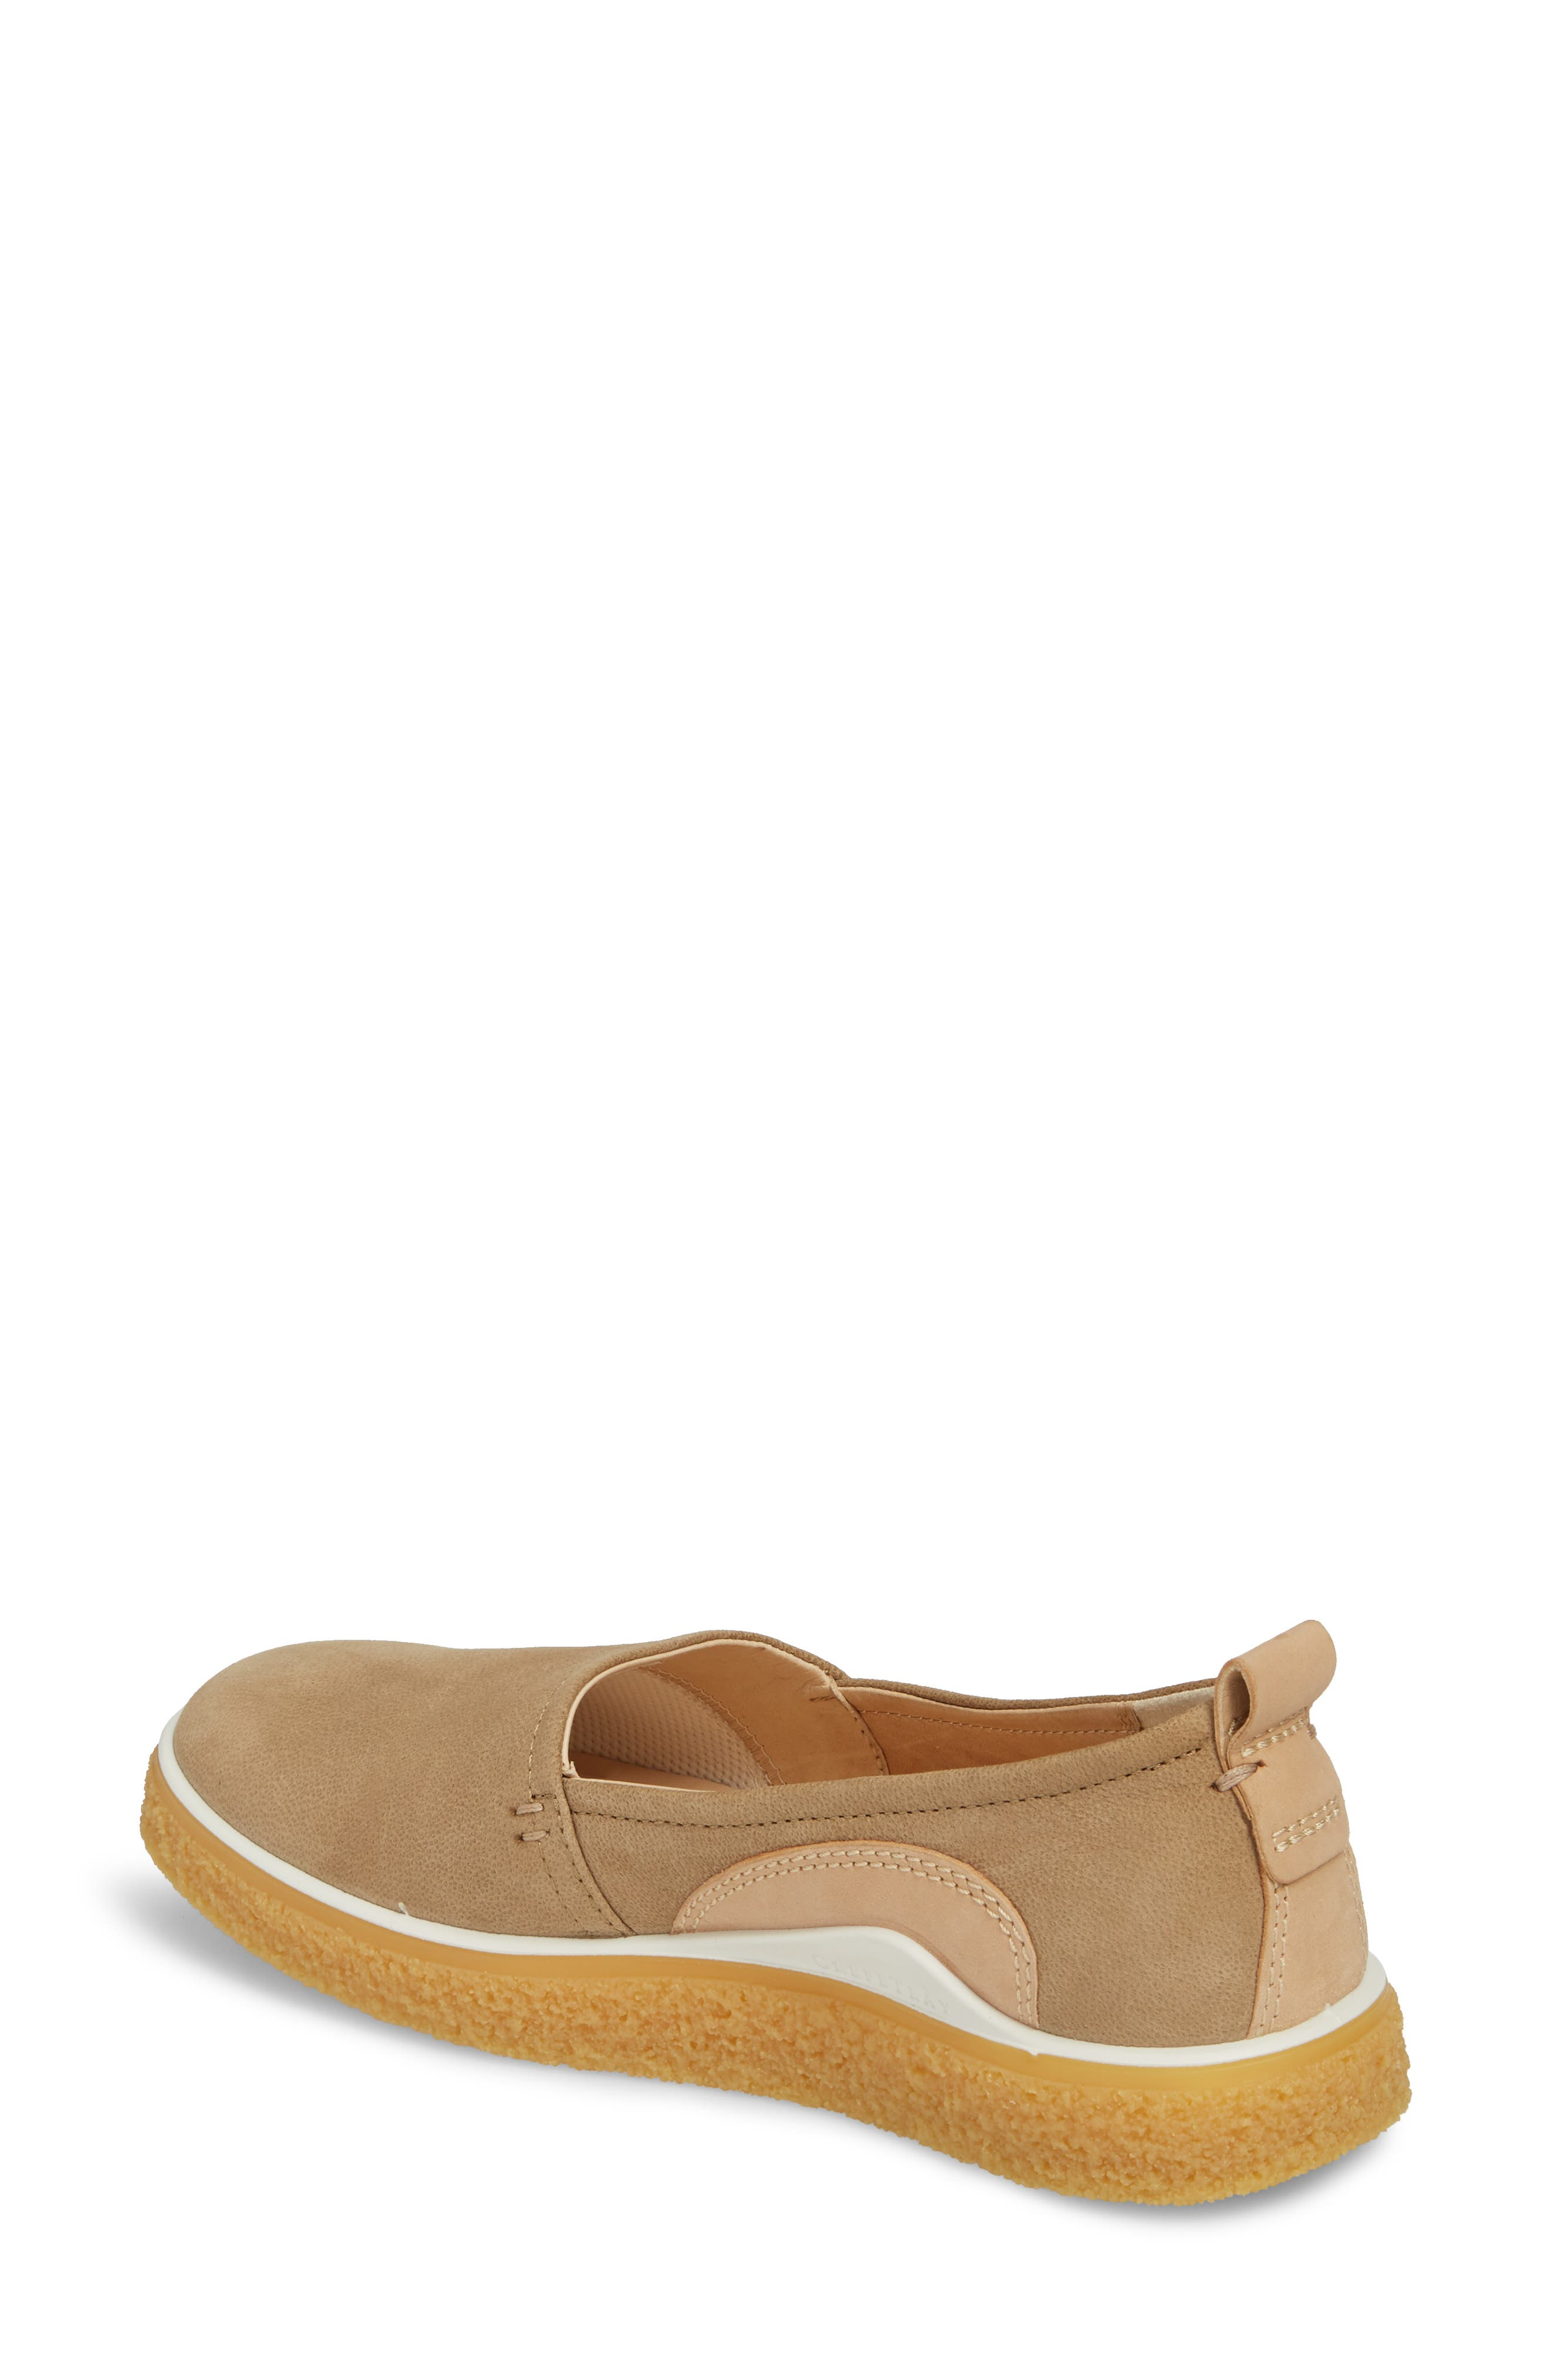 Crepetray Slip-On,                             Alternate thumbnail 2, color,                             Brown Leather